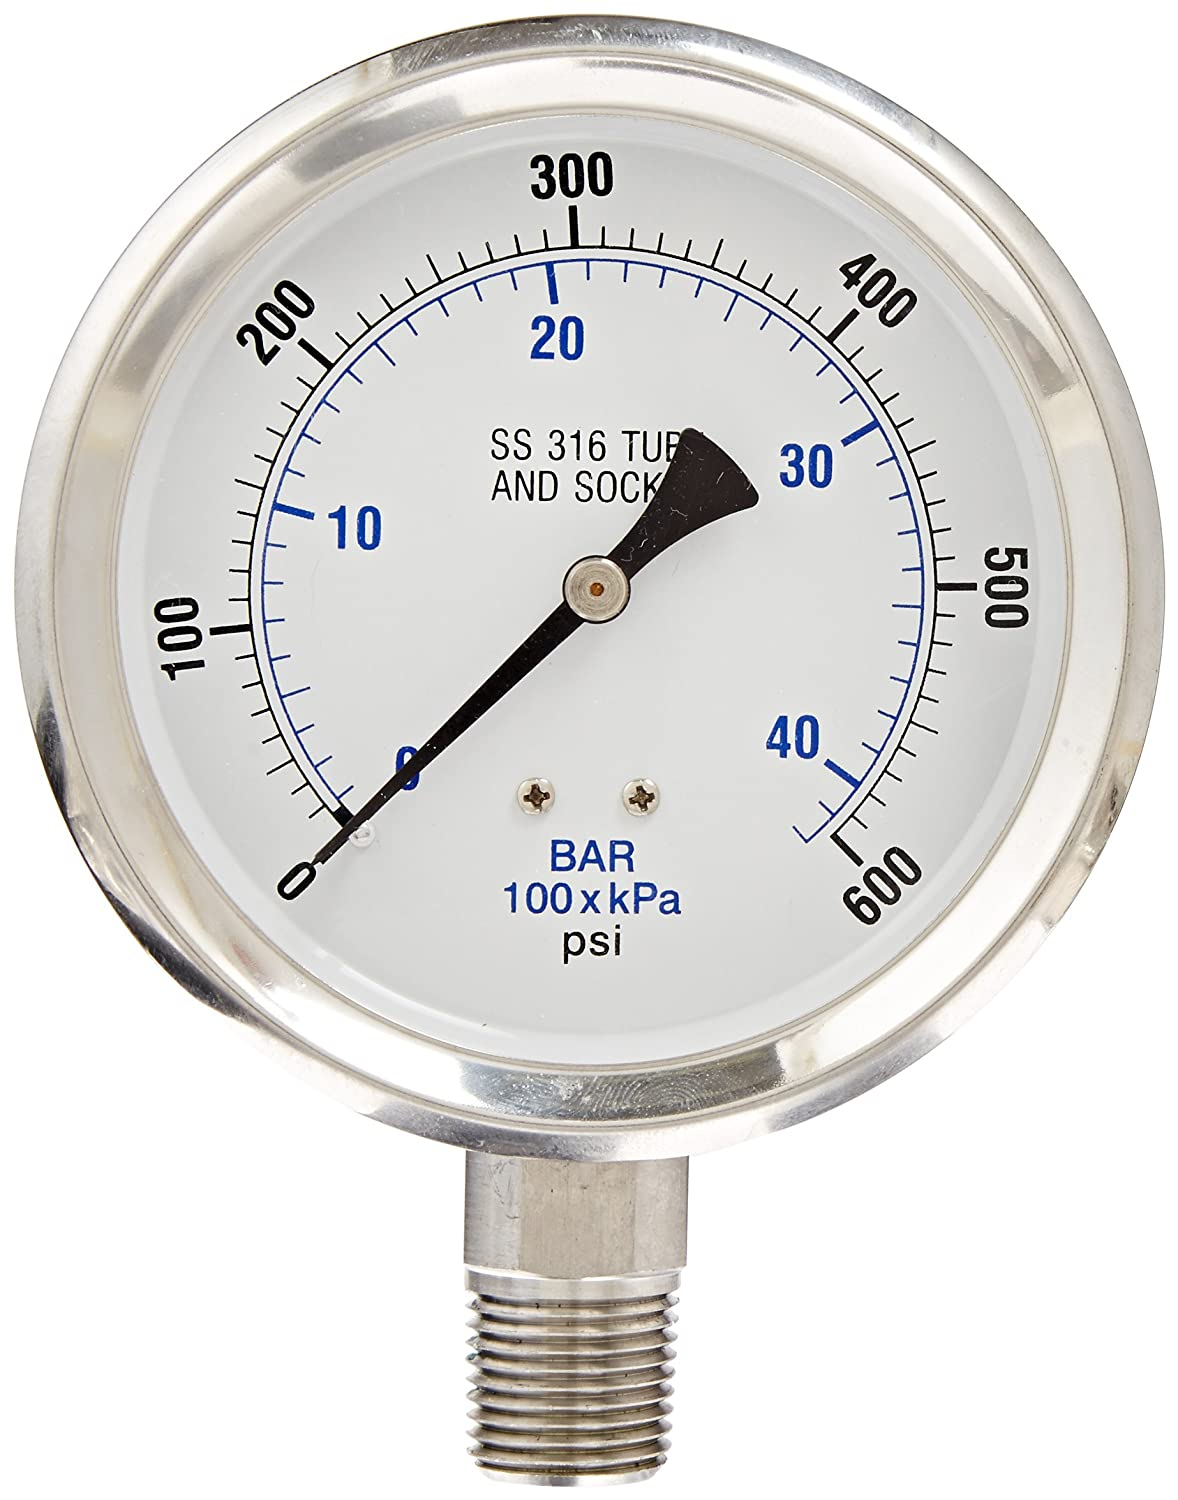 Stainless Steel Bezel 0//10000 psi Range 1//4 Male NPT Connection Size PIC Gauge 301D-404U 4 Dial Bottom Mount Dry Pressure Gauge with a Stainless Steel Case and Internals and Polycarbonate Lens 1//4 Male NPT Connection Size PIC Gauges